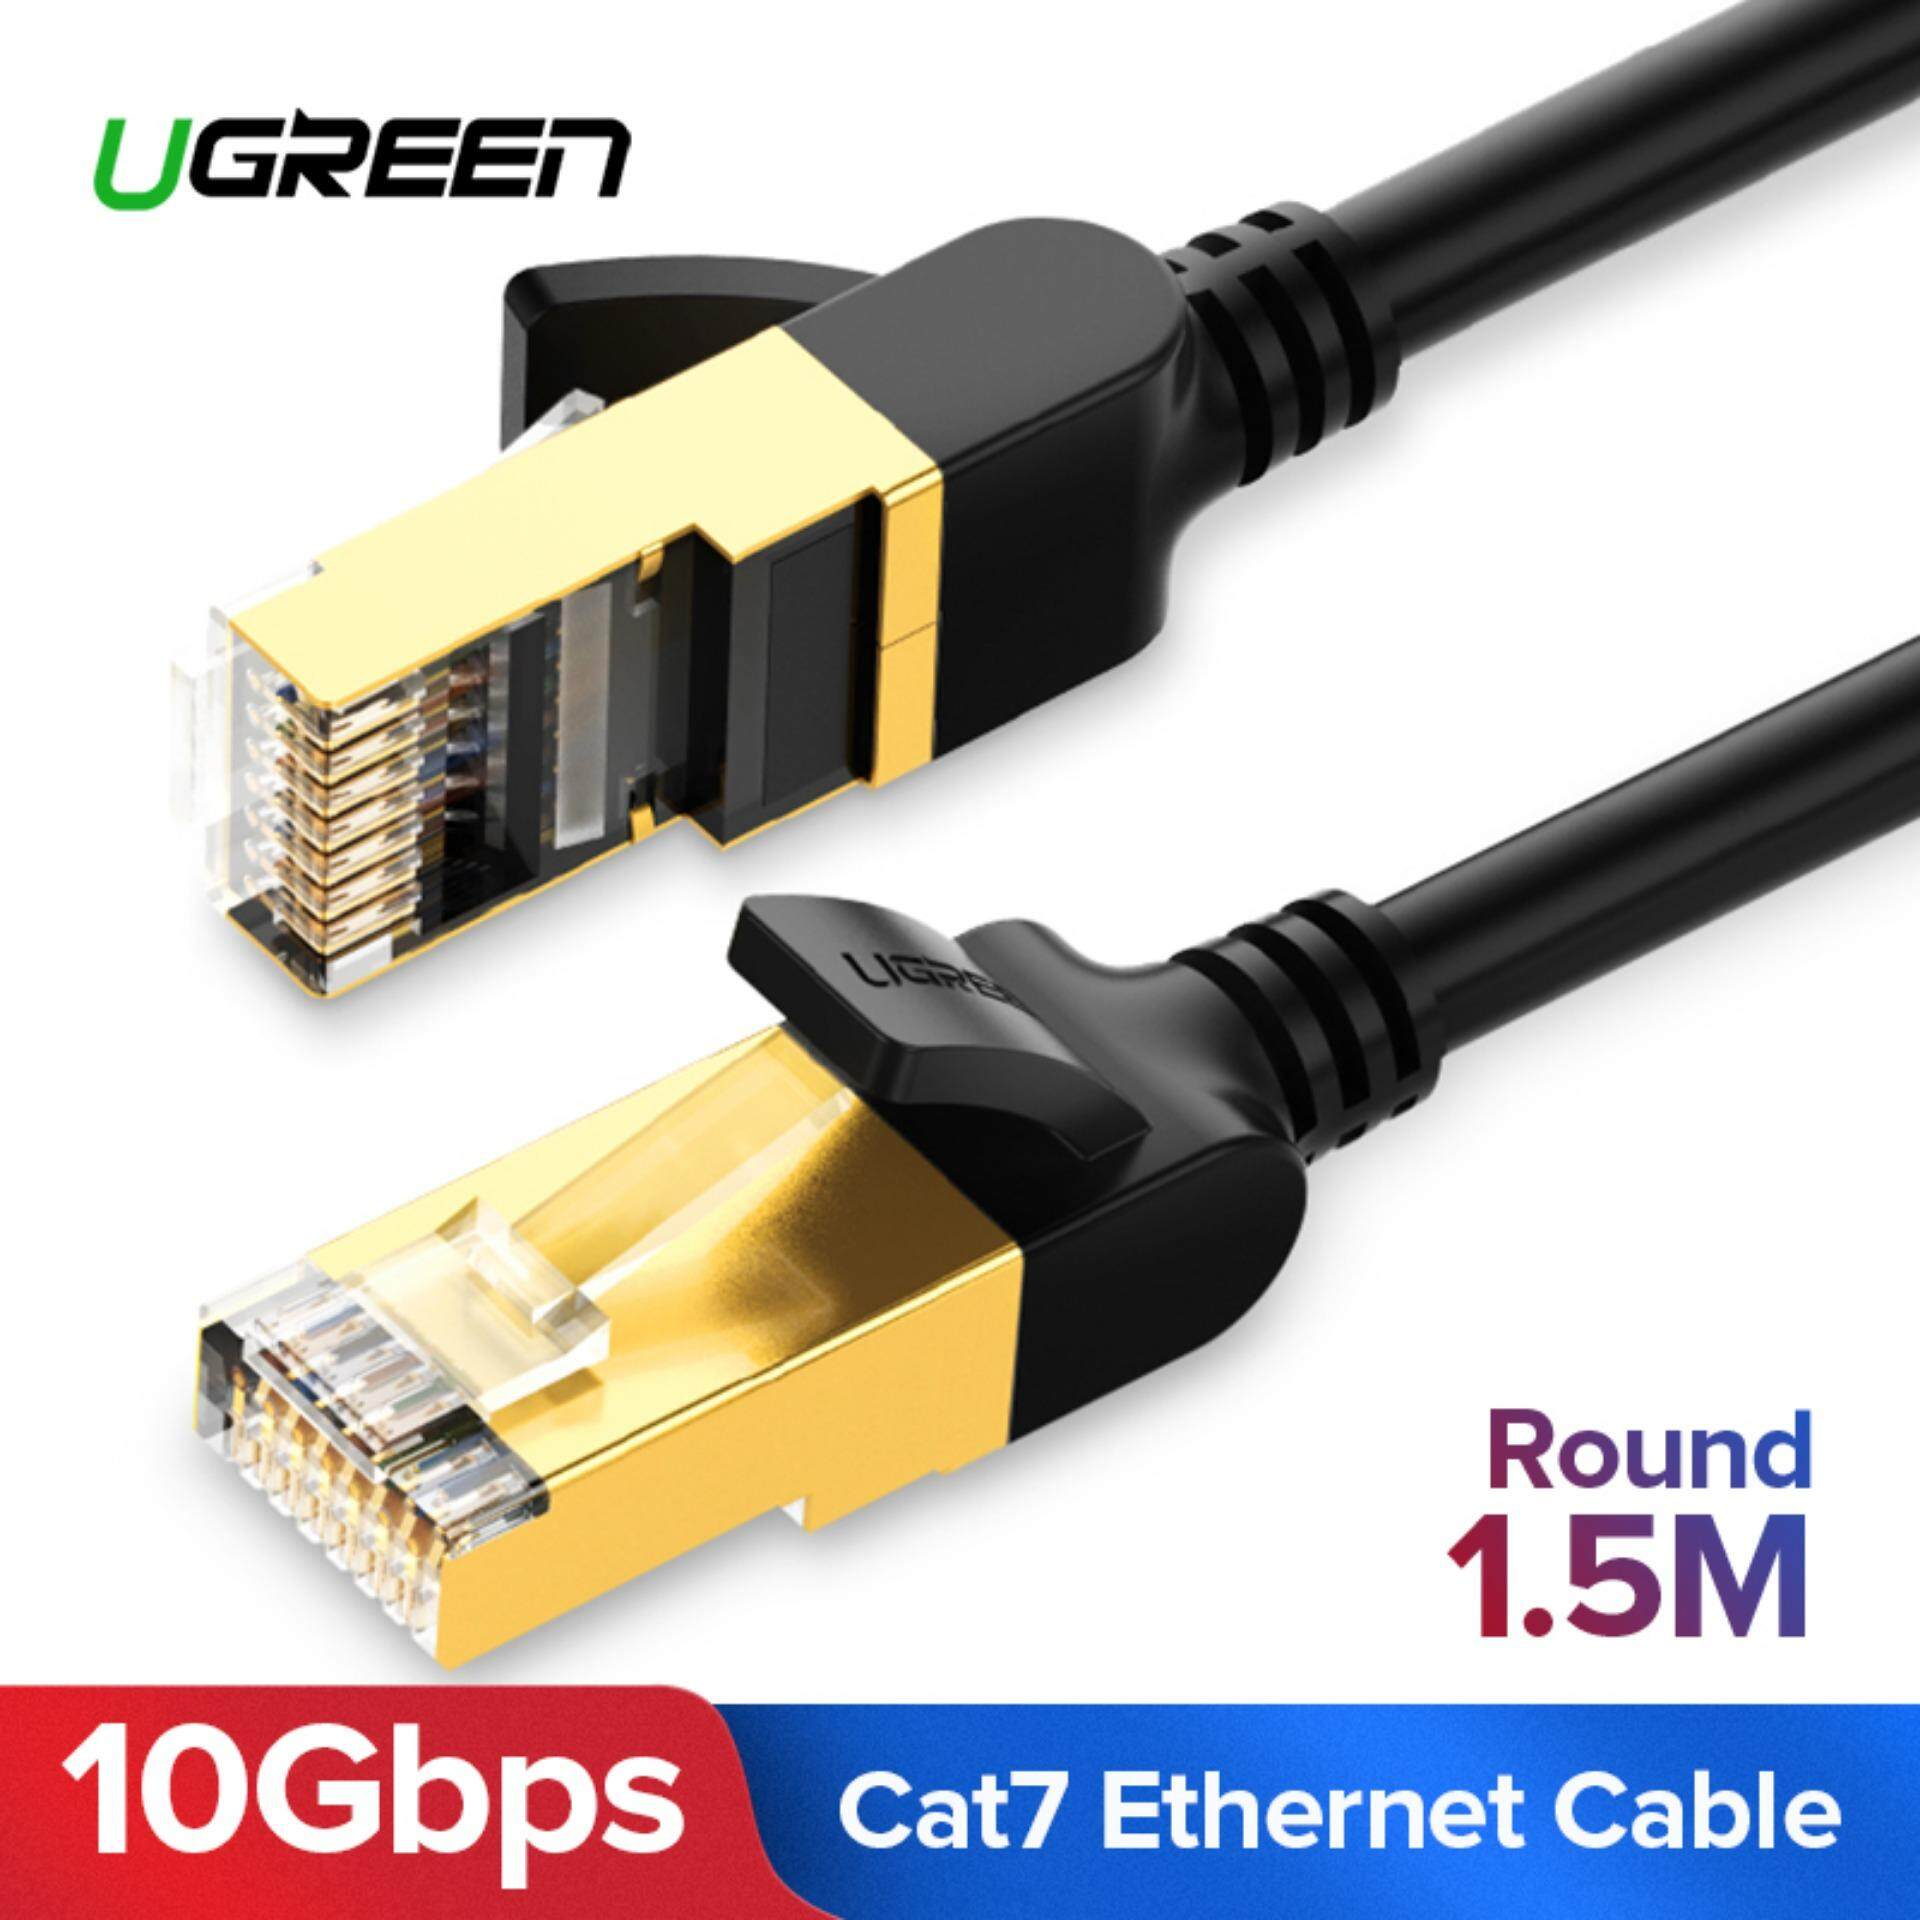 Computer Laptop Accessories With Best Price In Malaysia Wallet From Old Keyboard Circuit Board Diy Crafty Purchases Pin Ugreen 15 Meter Ethernet Cable Cat7 10 Gigabit Rj45 Network 600mhz Lan Wire Cord